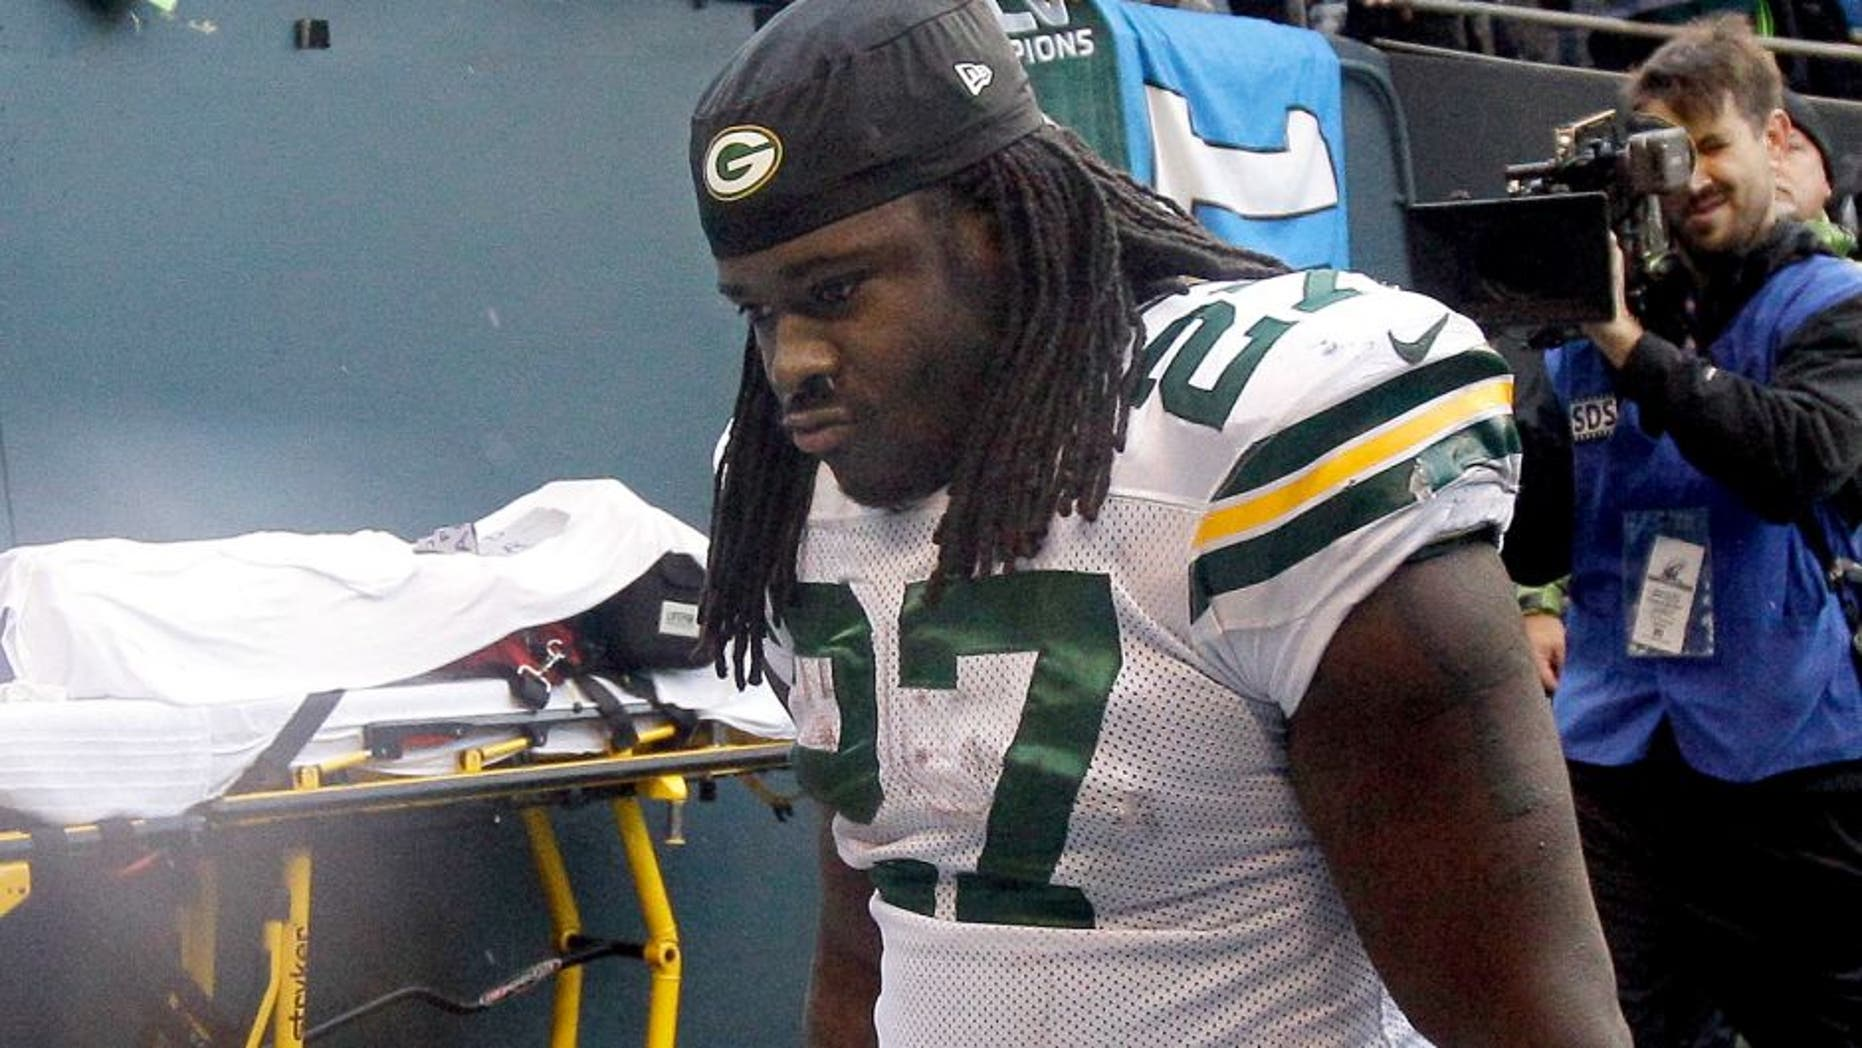 Green Bay Packers' Eddie Lacy looks down as he walks off the field after overtime of the NFL football NFC Championship game against the Seattle Seahawks Sunday, Jan. 18, 2015, in Seattle. The Seahawks won 28-22 to advance to Super Bowl XLIX. (AP Photo/Jeff Chiu)